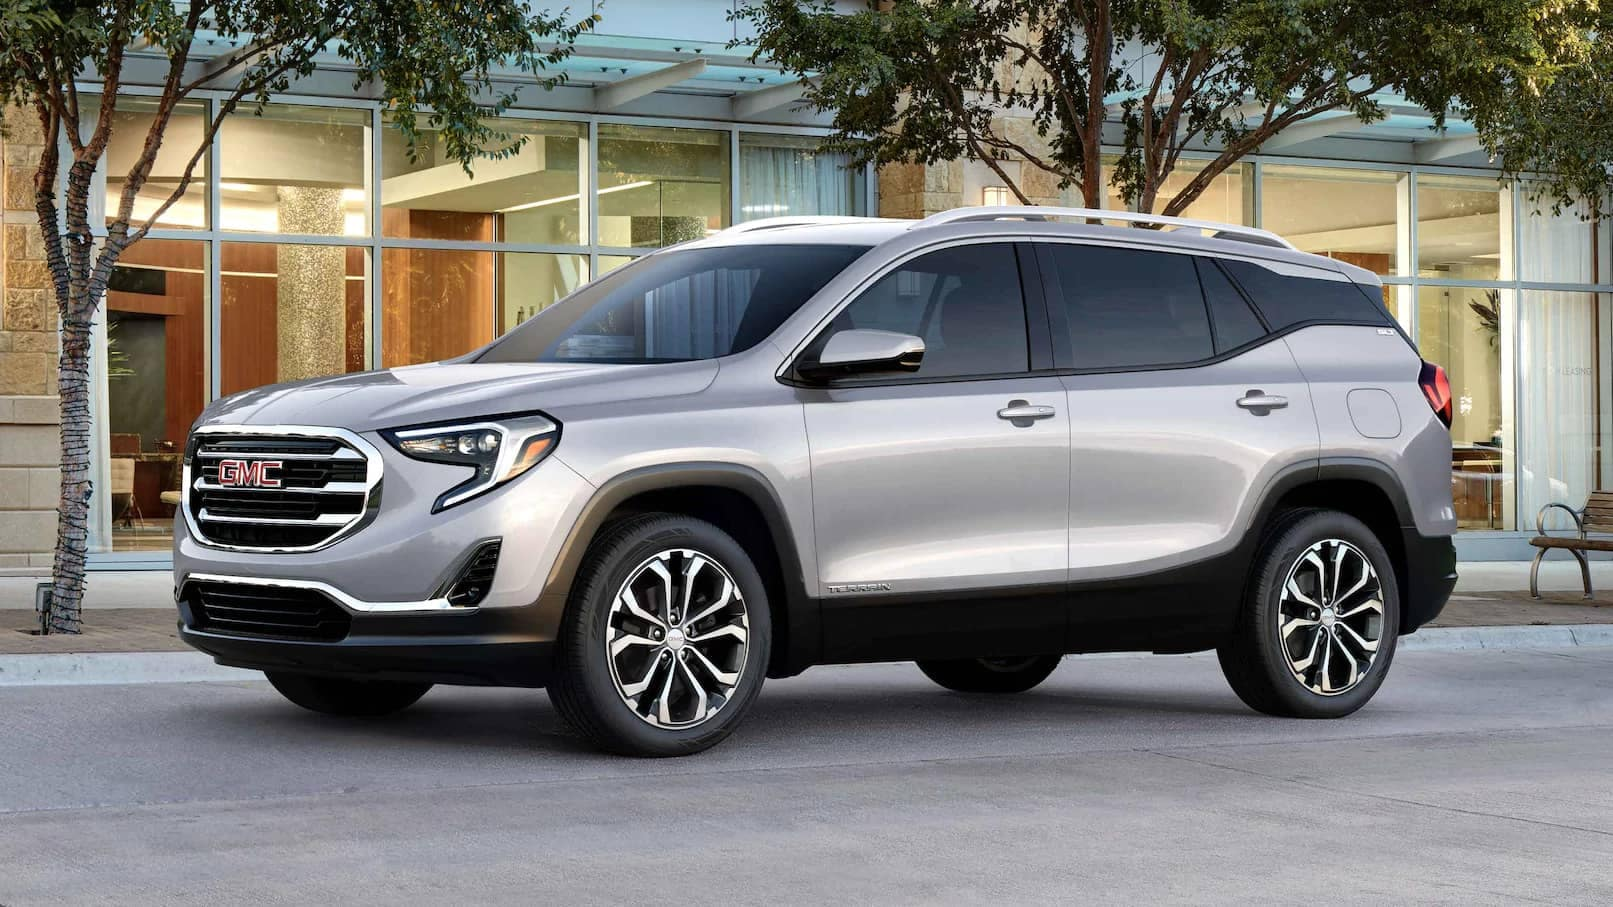 2021 GMC Terrain parked with glass building behind